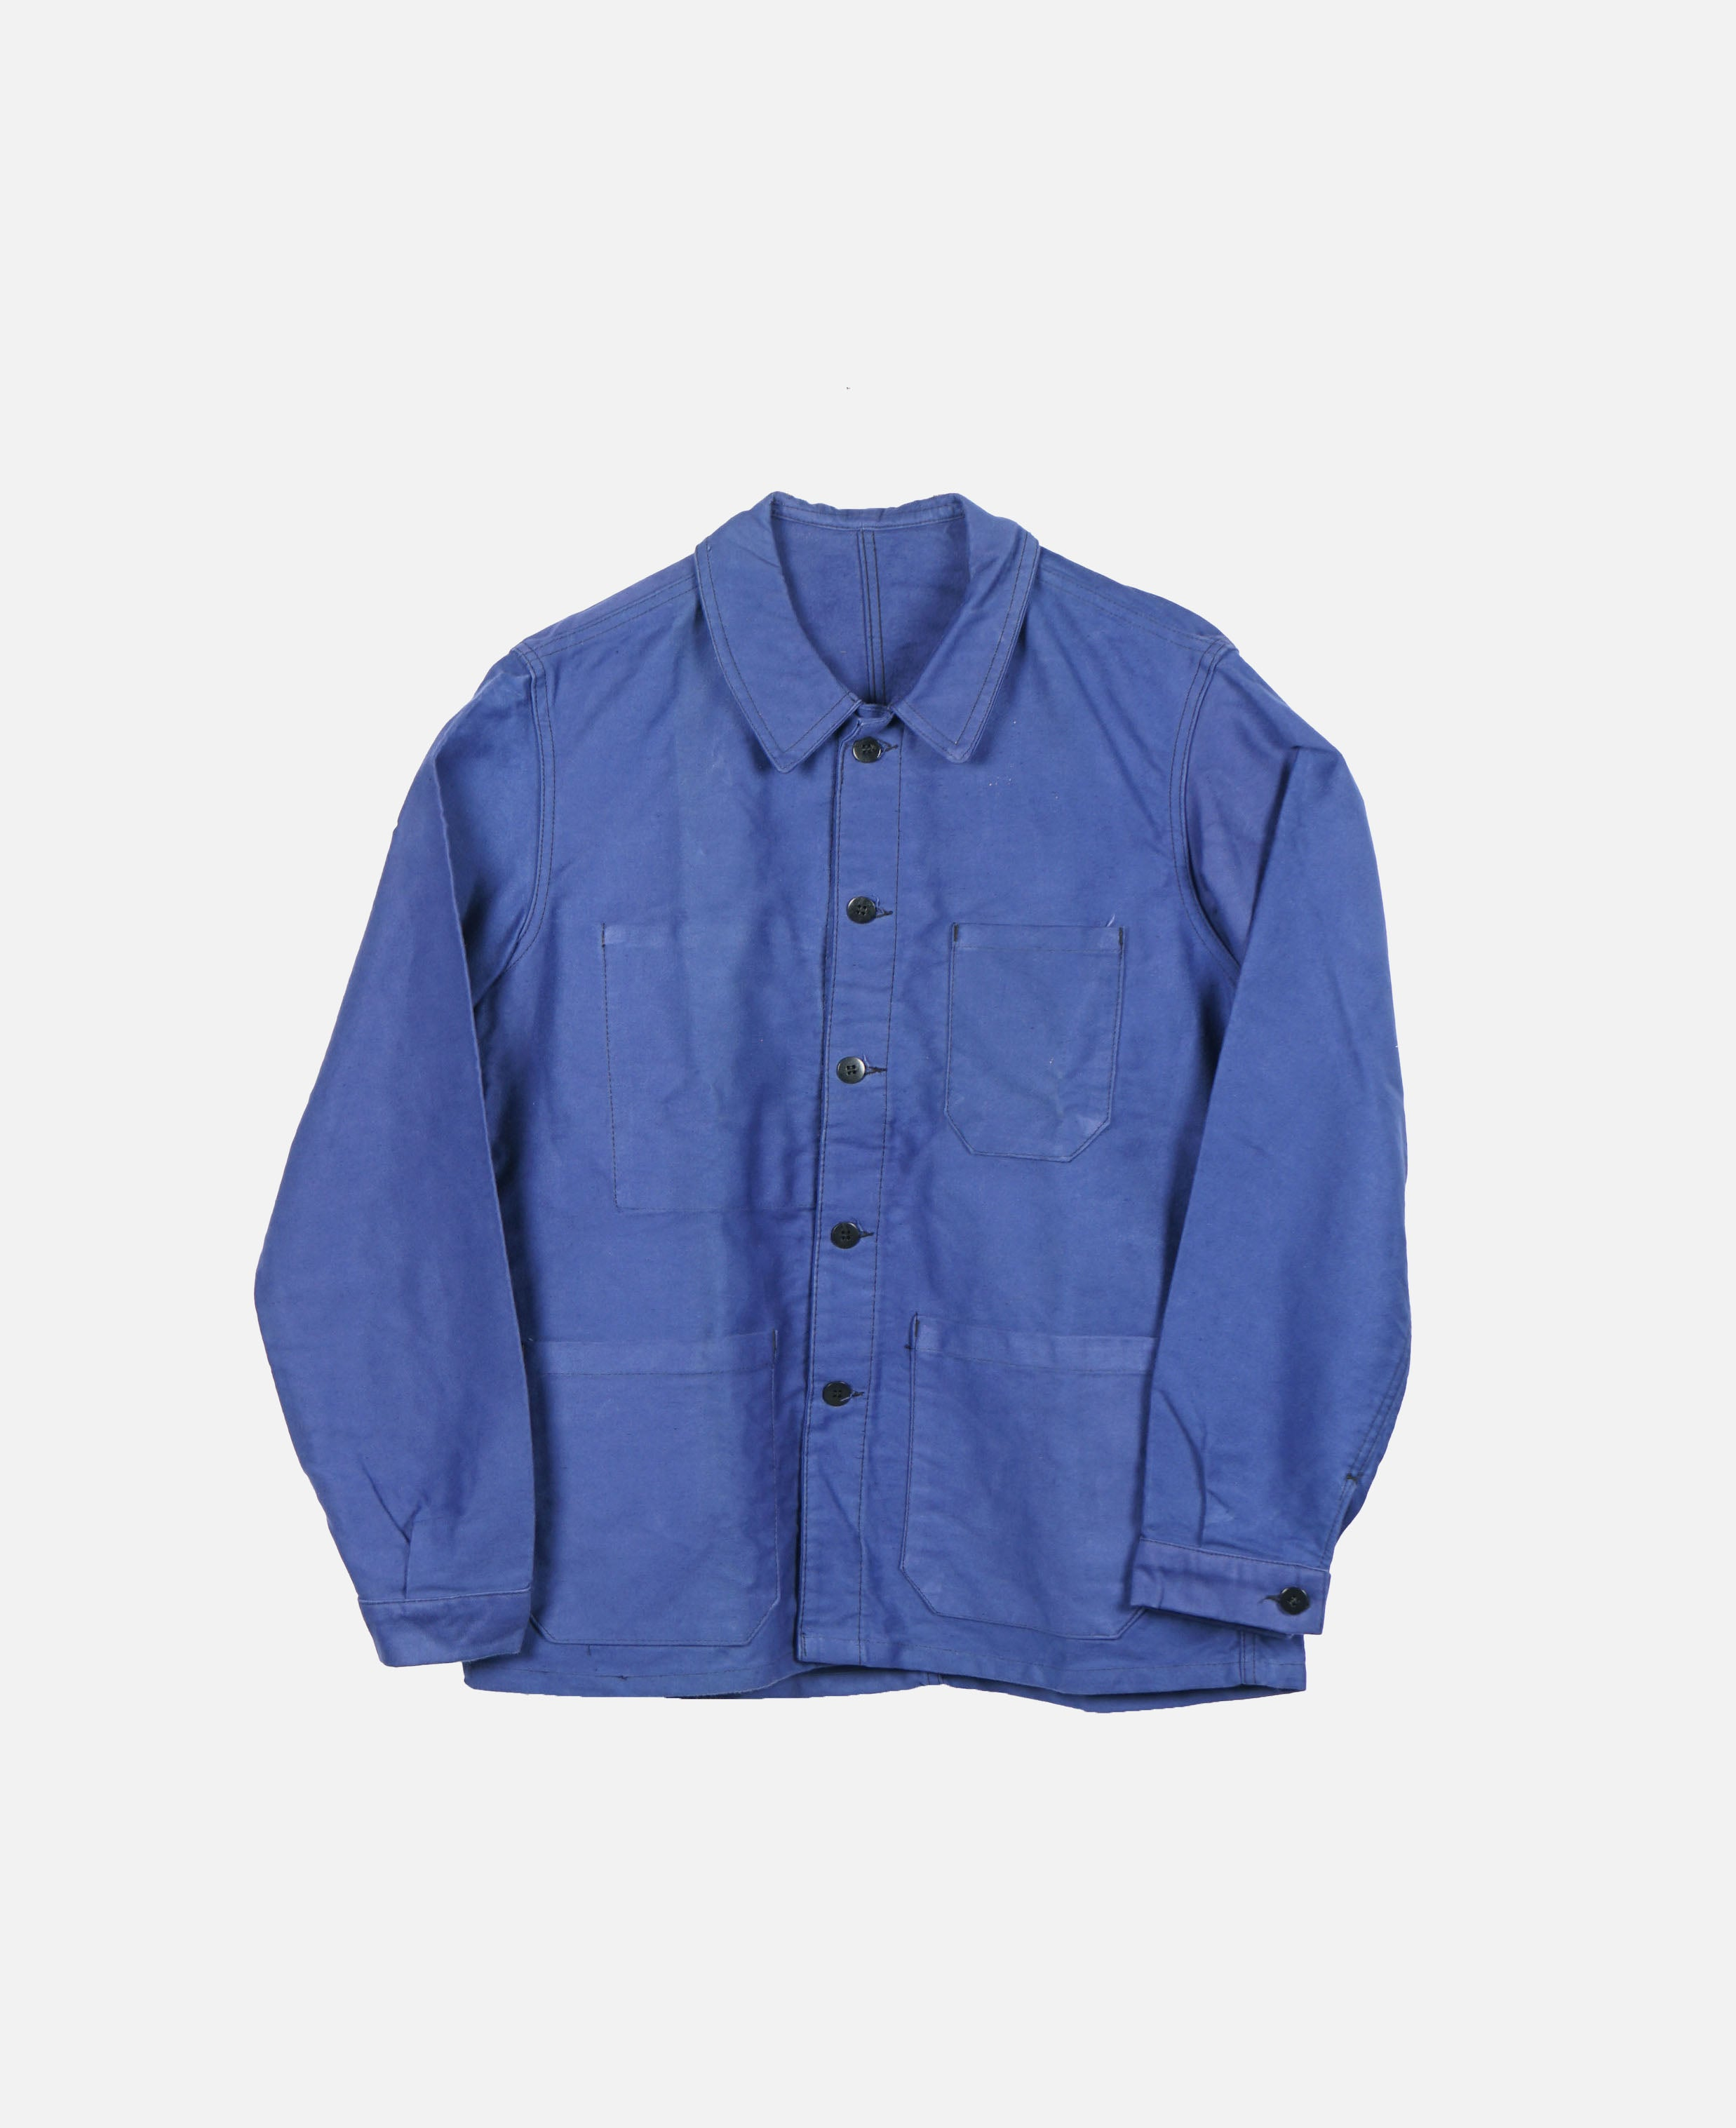 French Moleskin Work Jacket